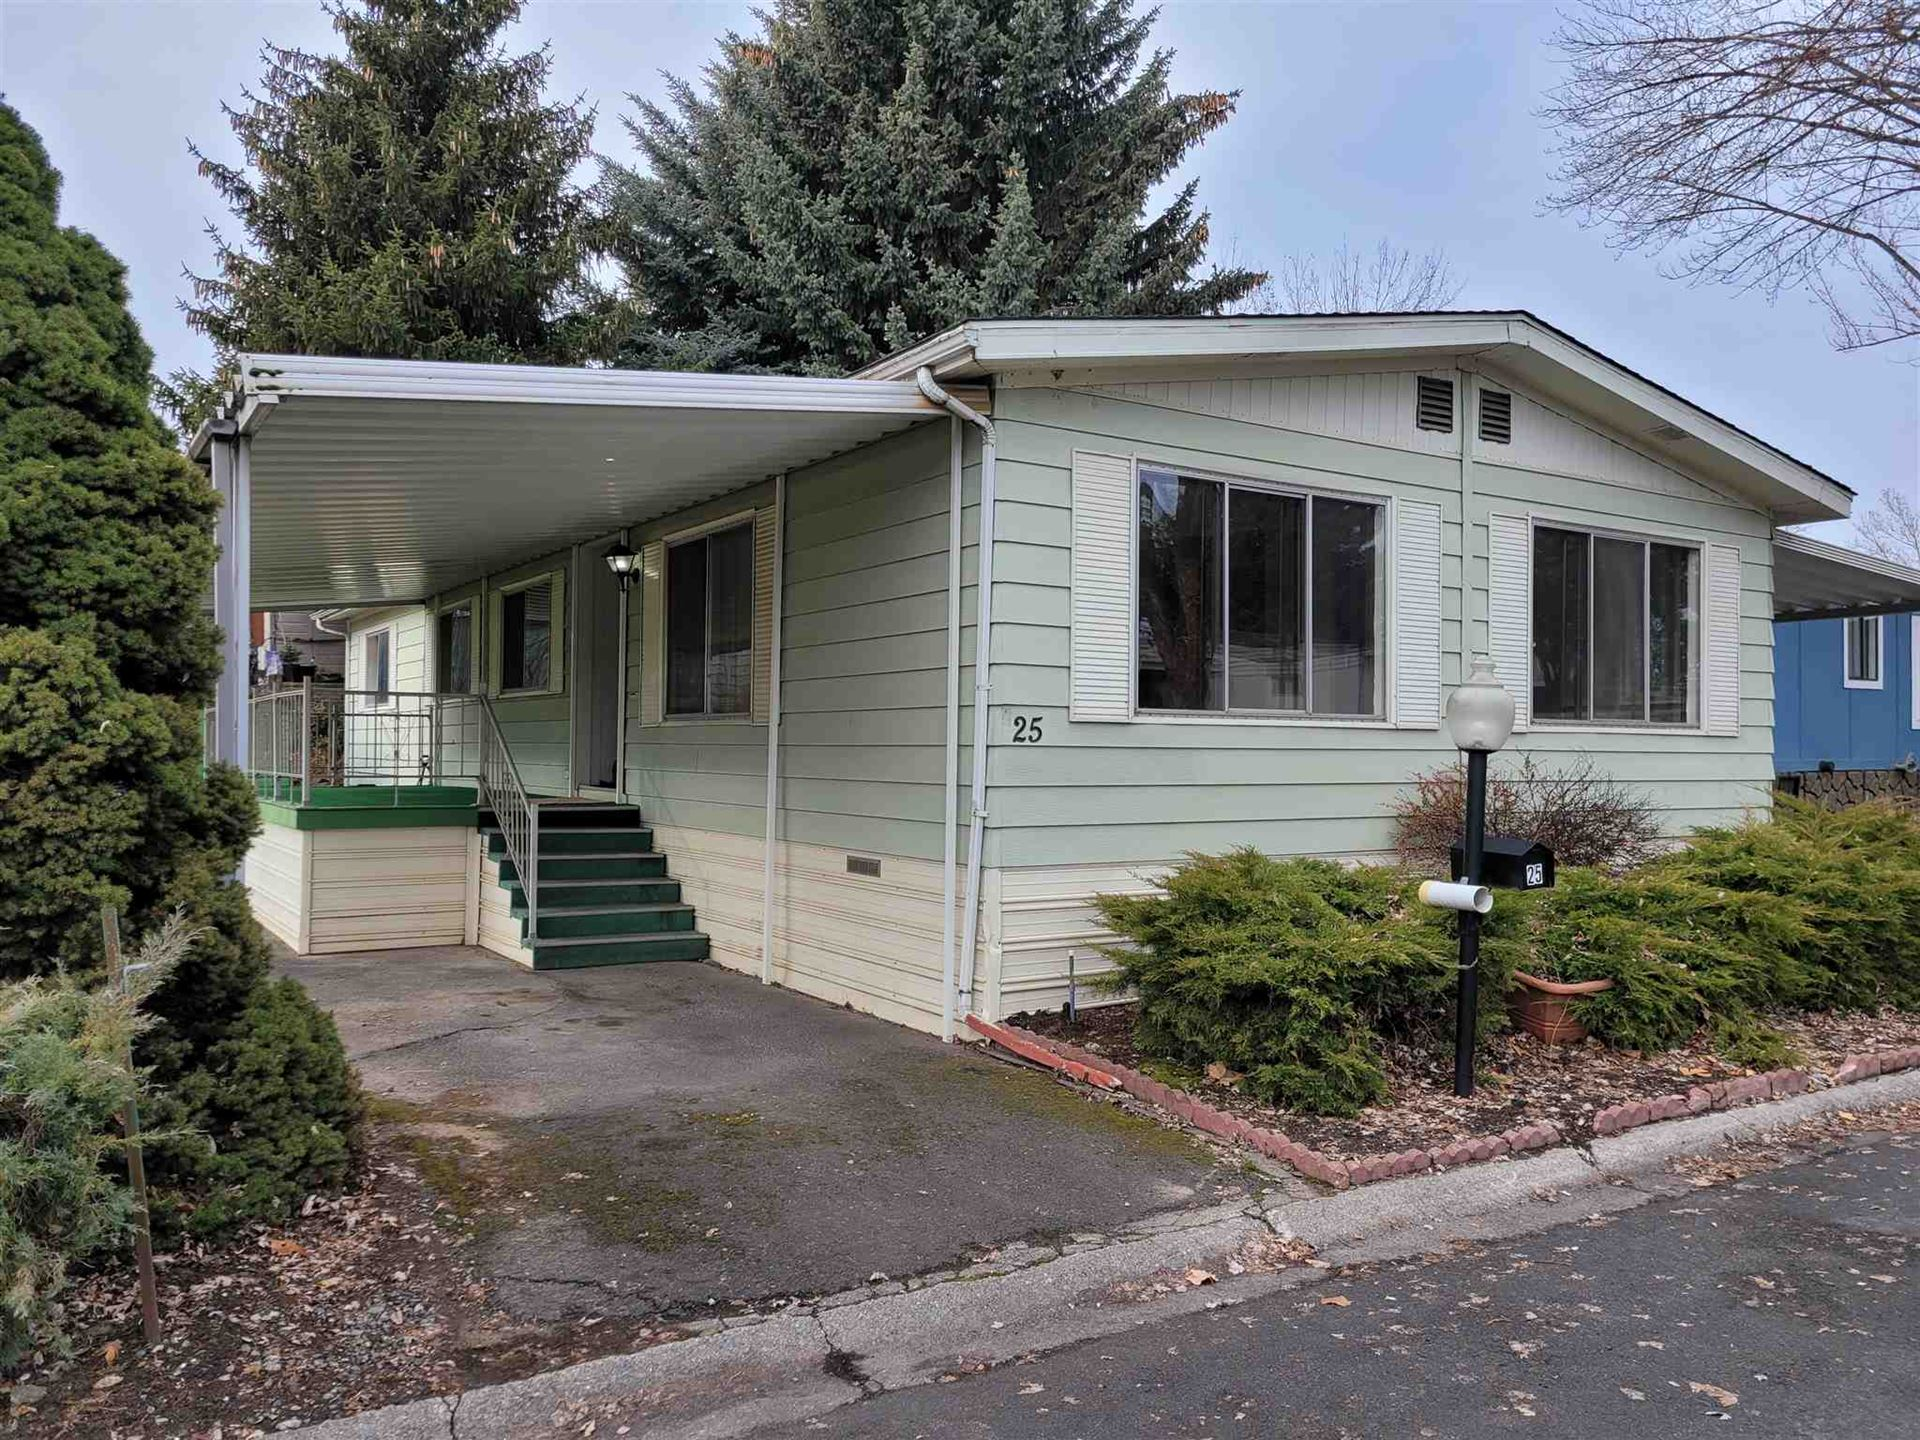 2311 W 16th Ave #25, Spokane, WA 99224 - #: 202110715